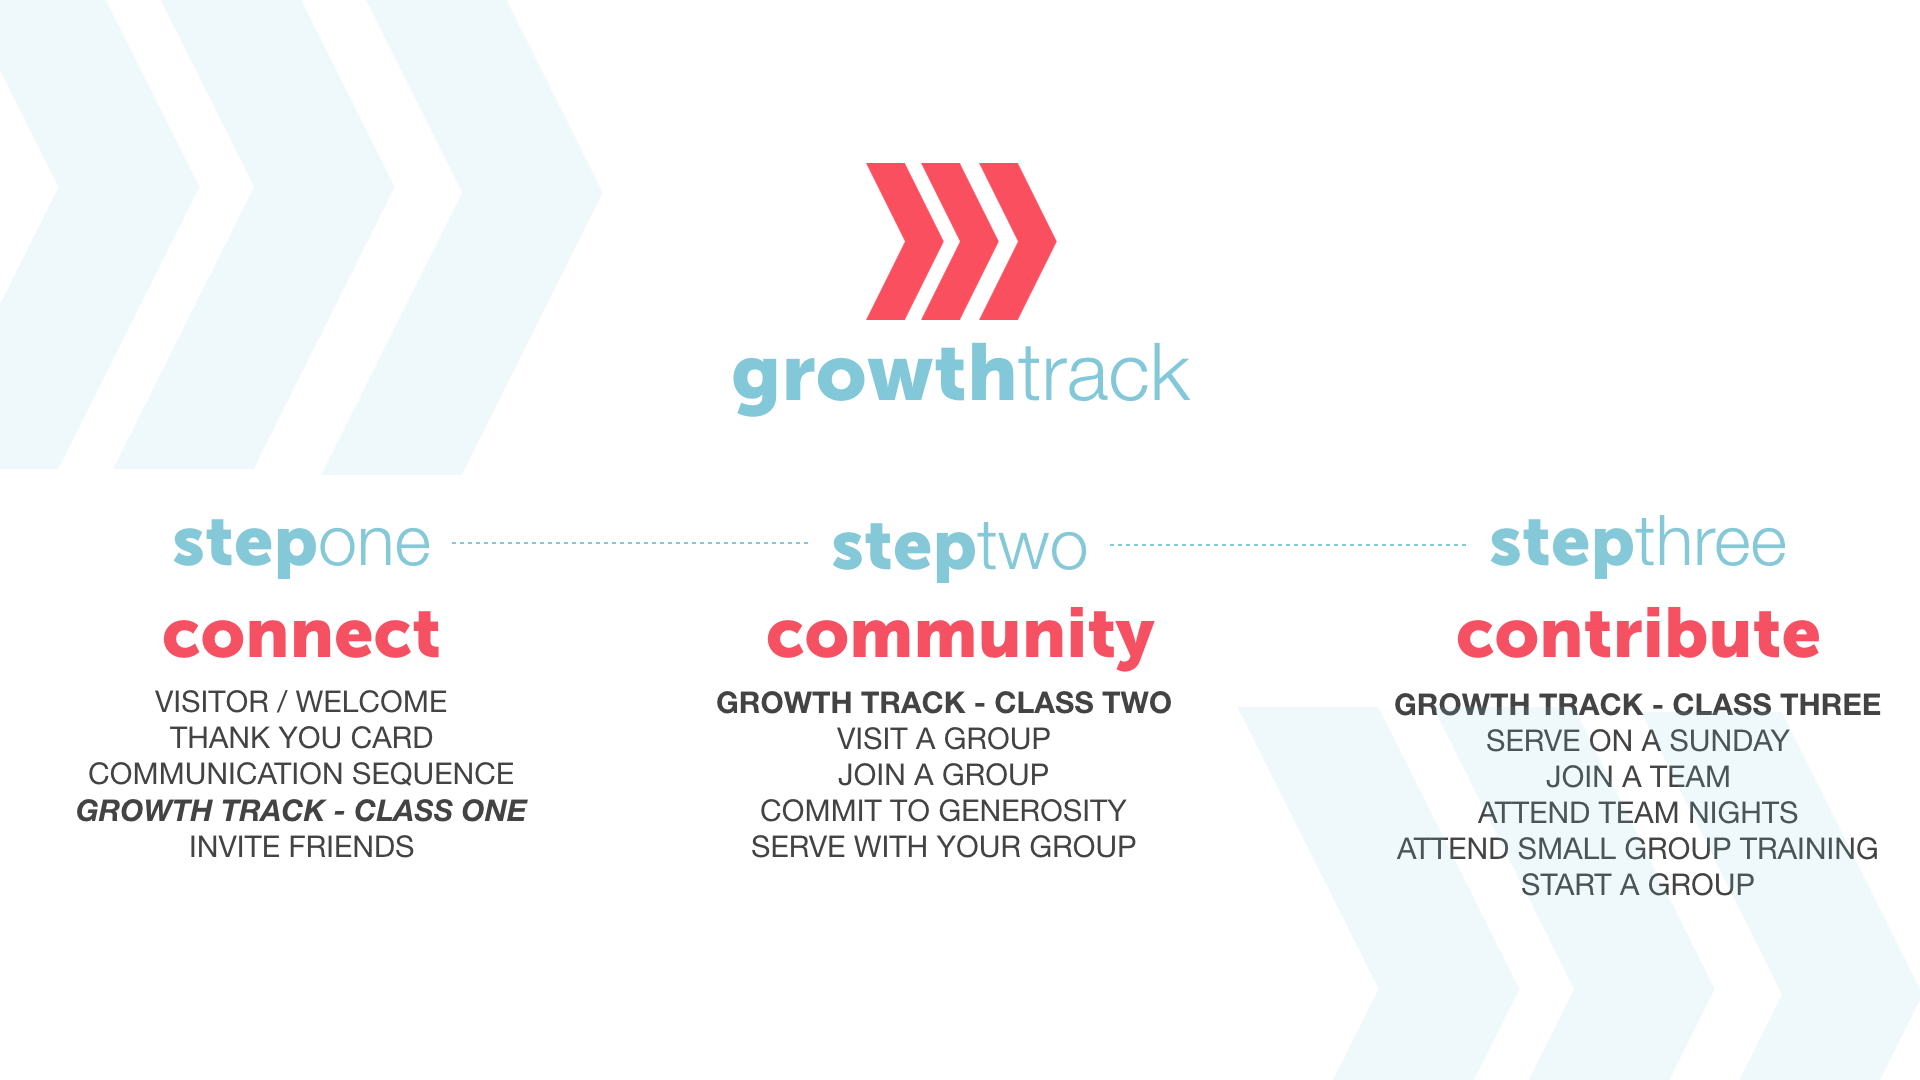 Here Is a Free, Ready-to-Implement Growth Track Curriculum